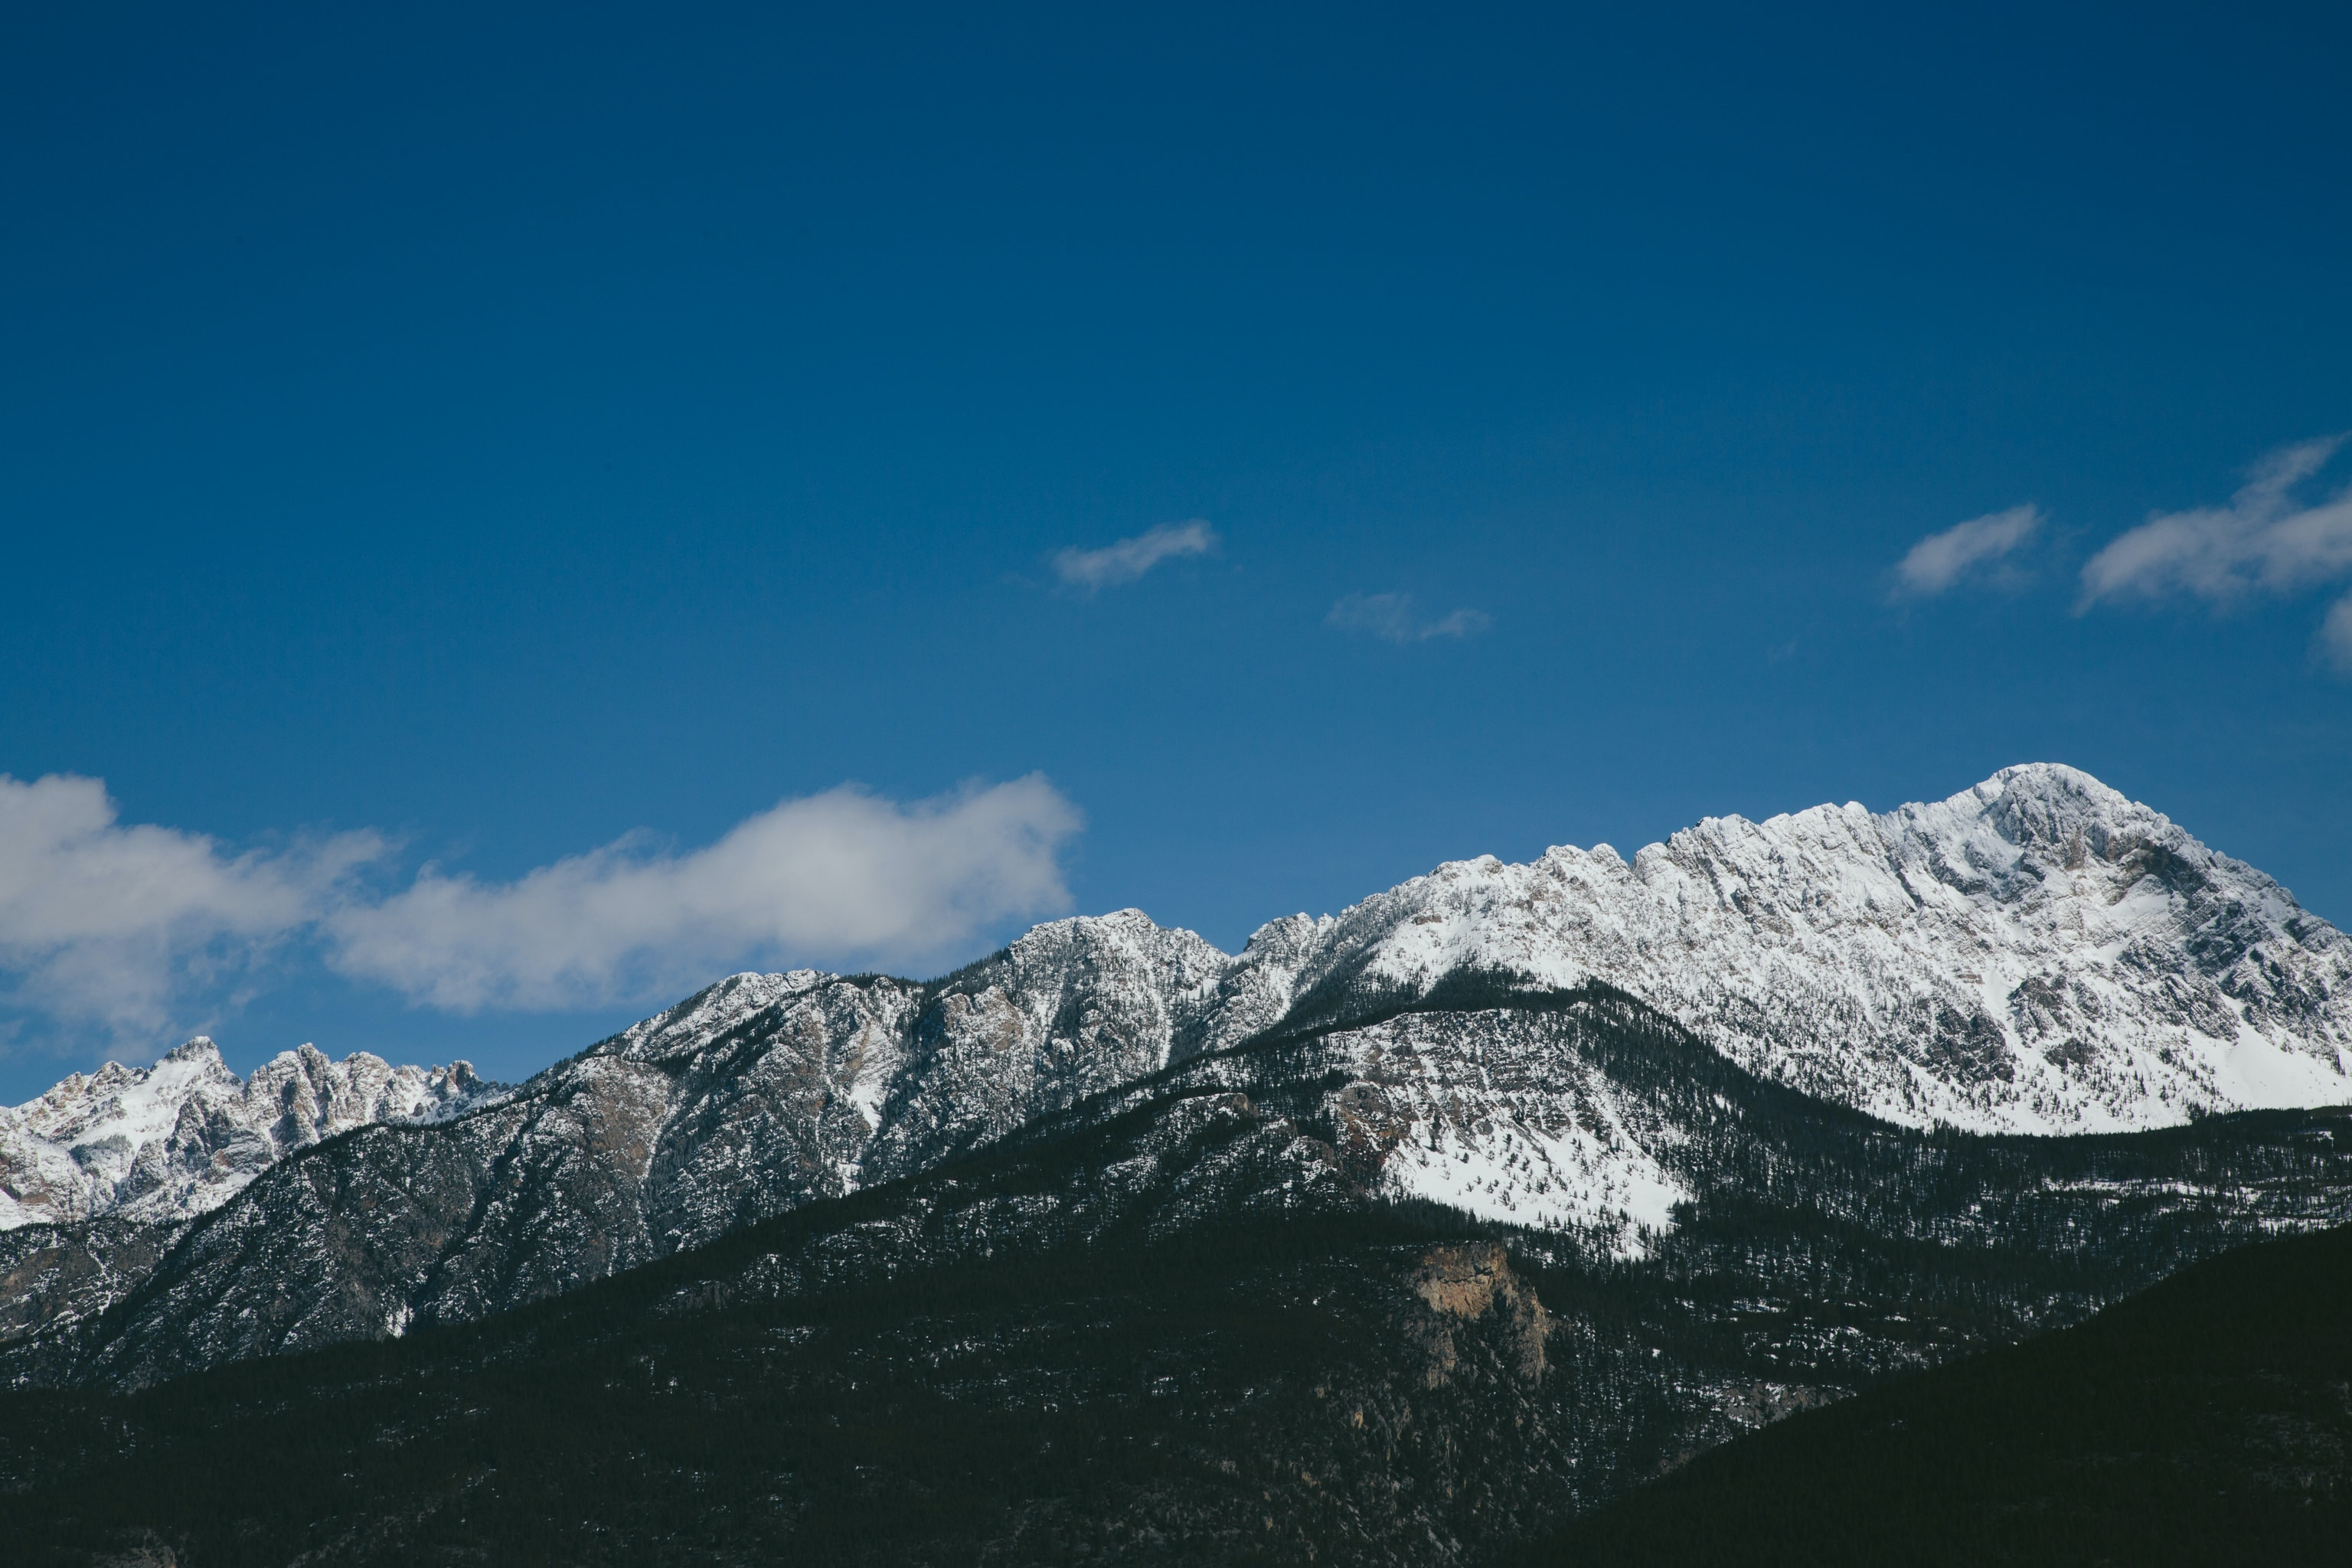 A long mountain ridge crowned with a tall snow-topped peak